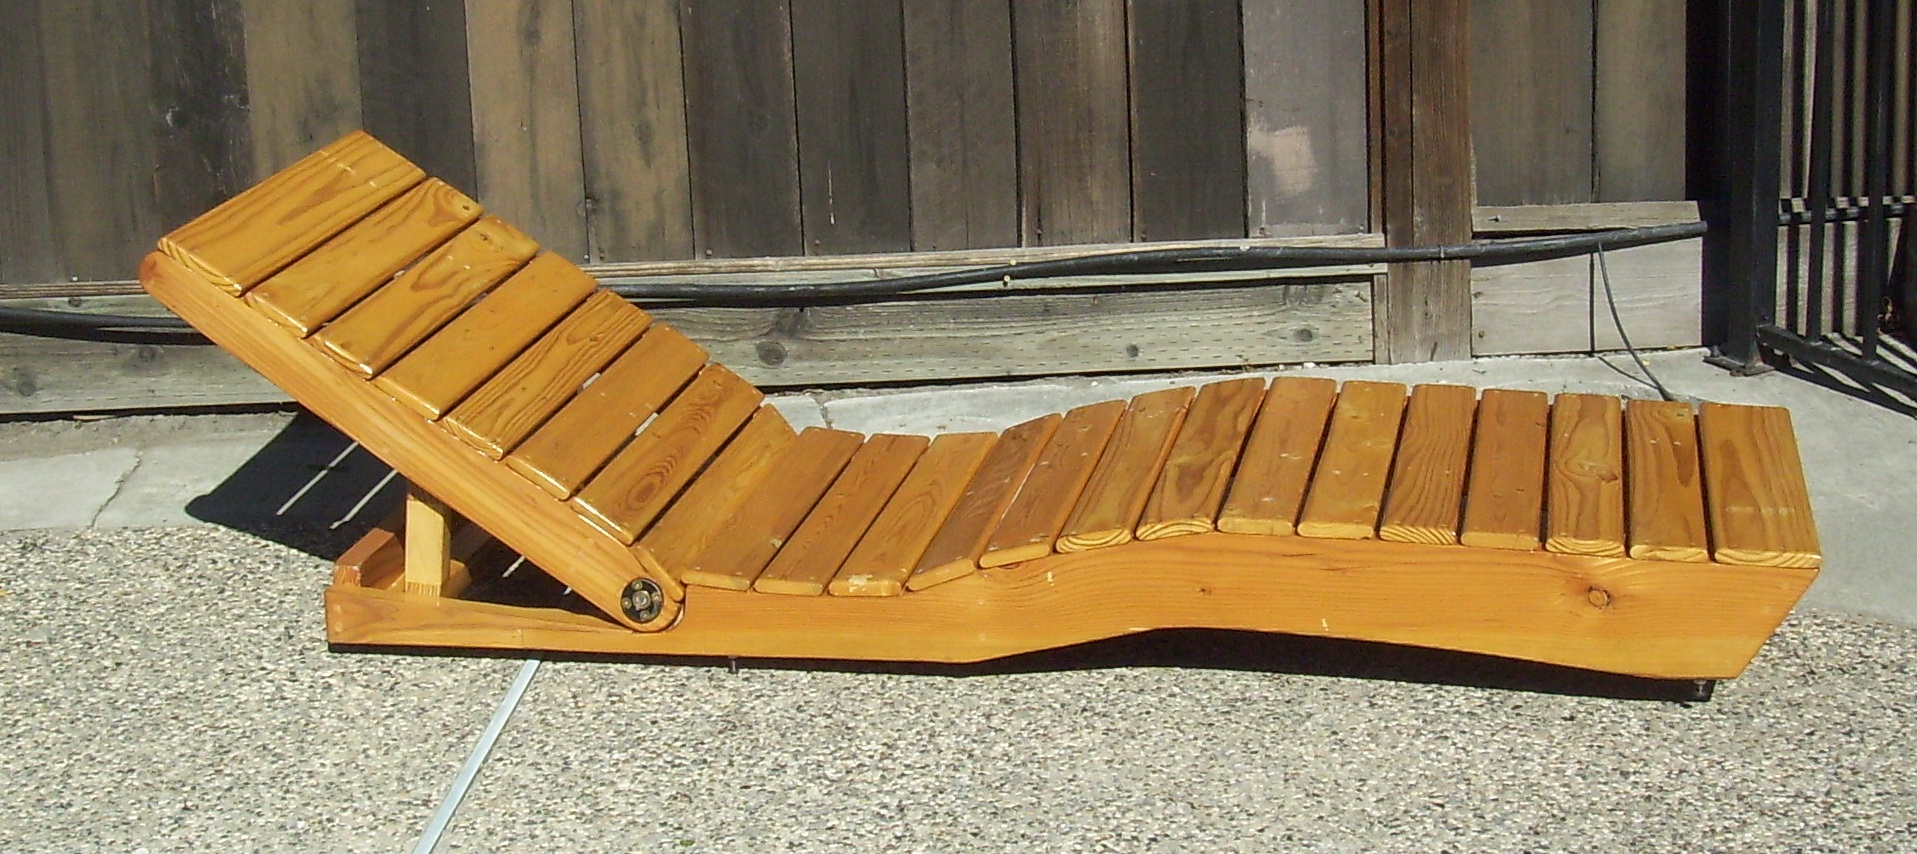 Tremendous Outdoor Chaise Lounge Made From Pallet Wood Gmtry Best Dining Table And Chair Ideas Images Gmtryco